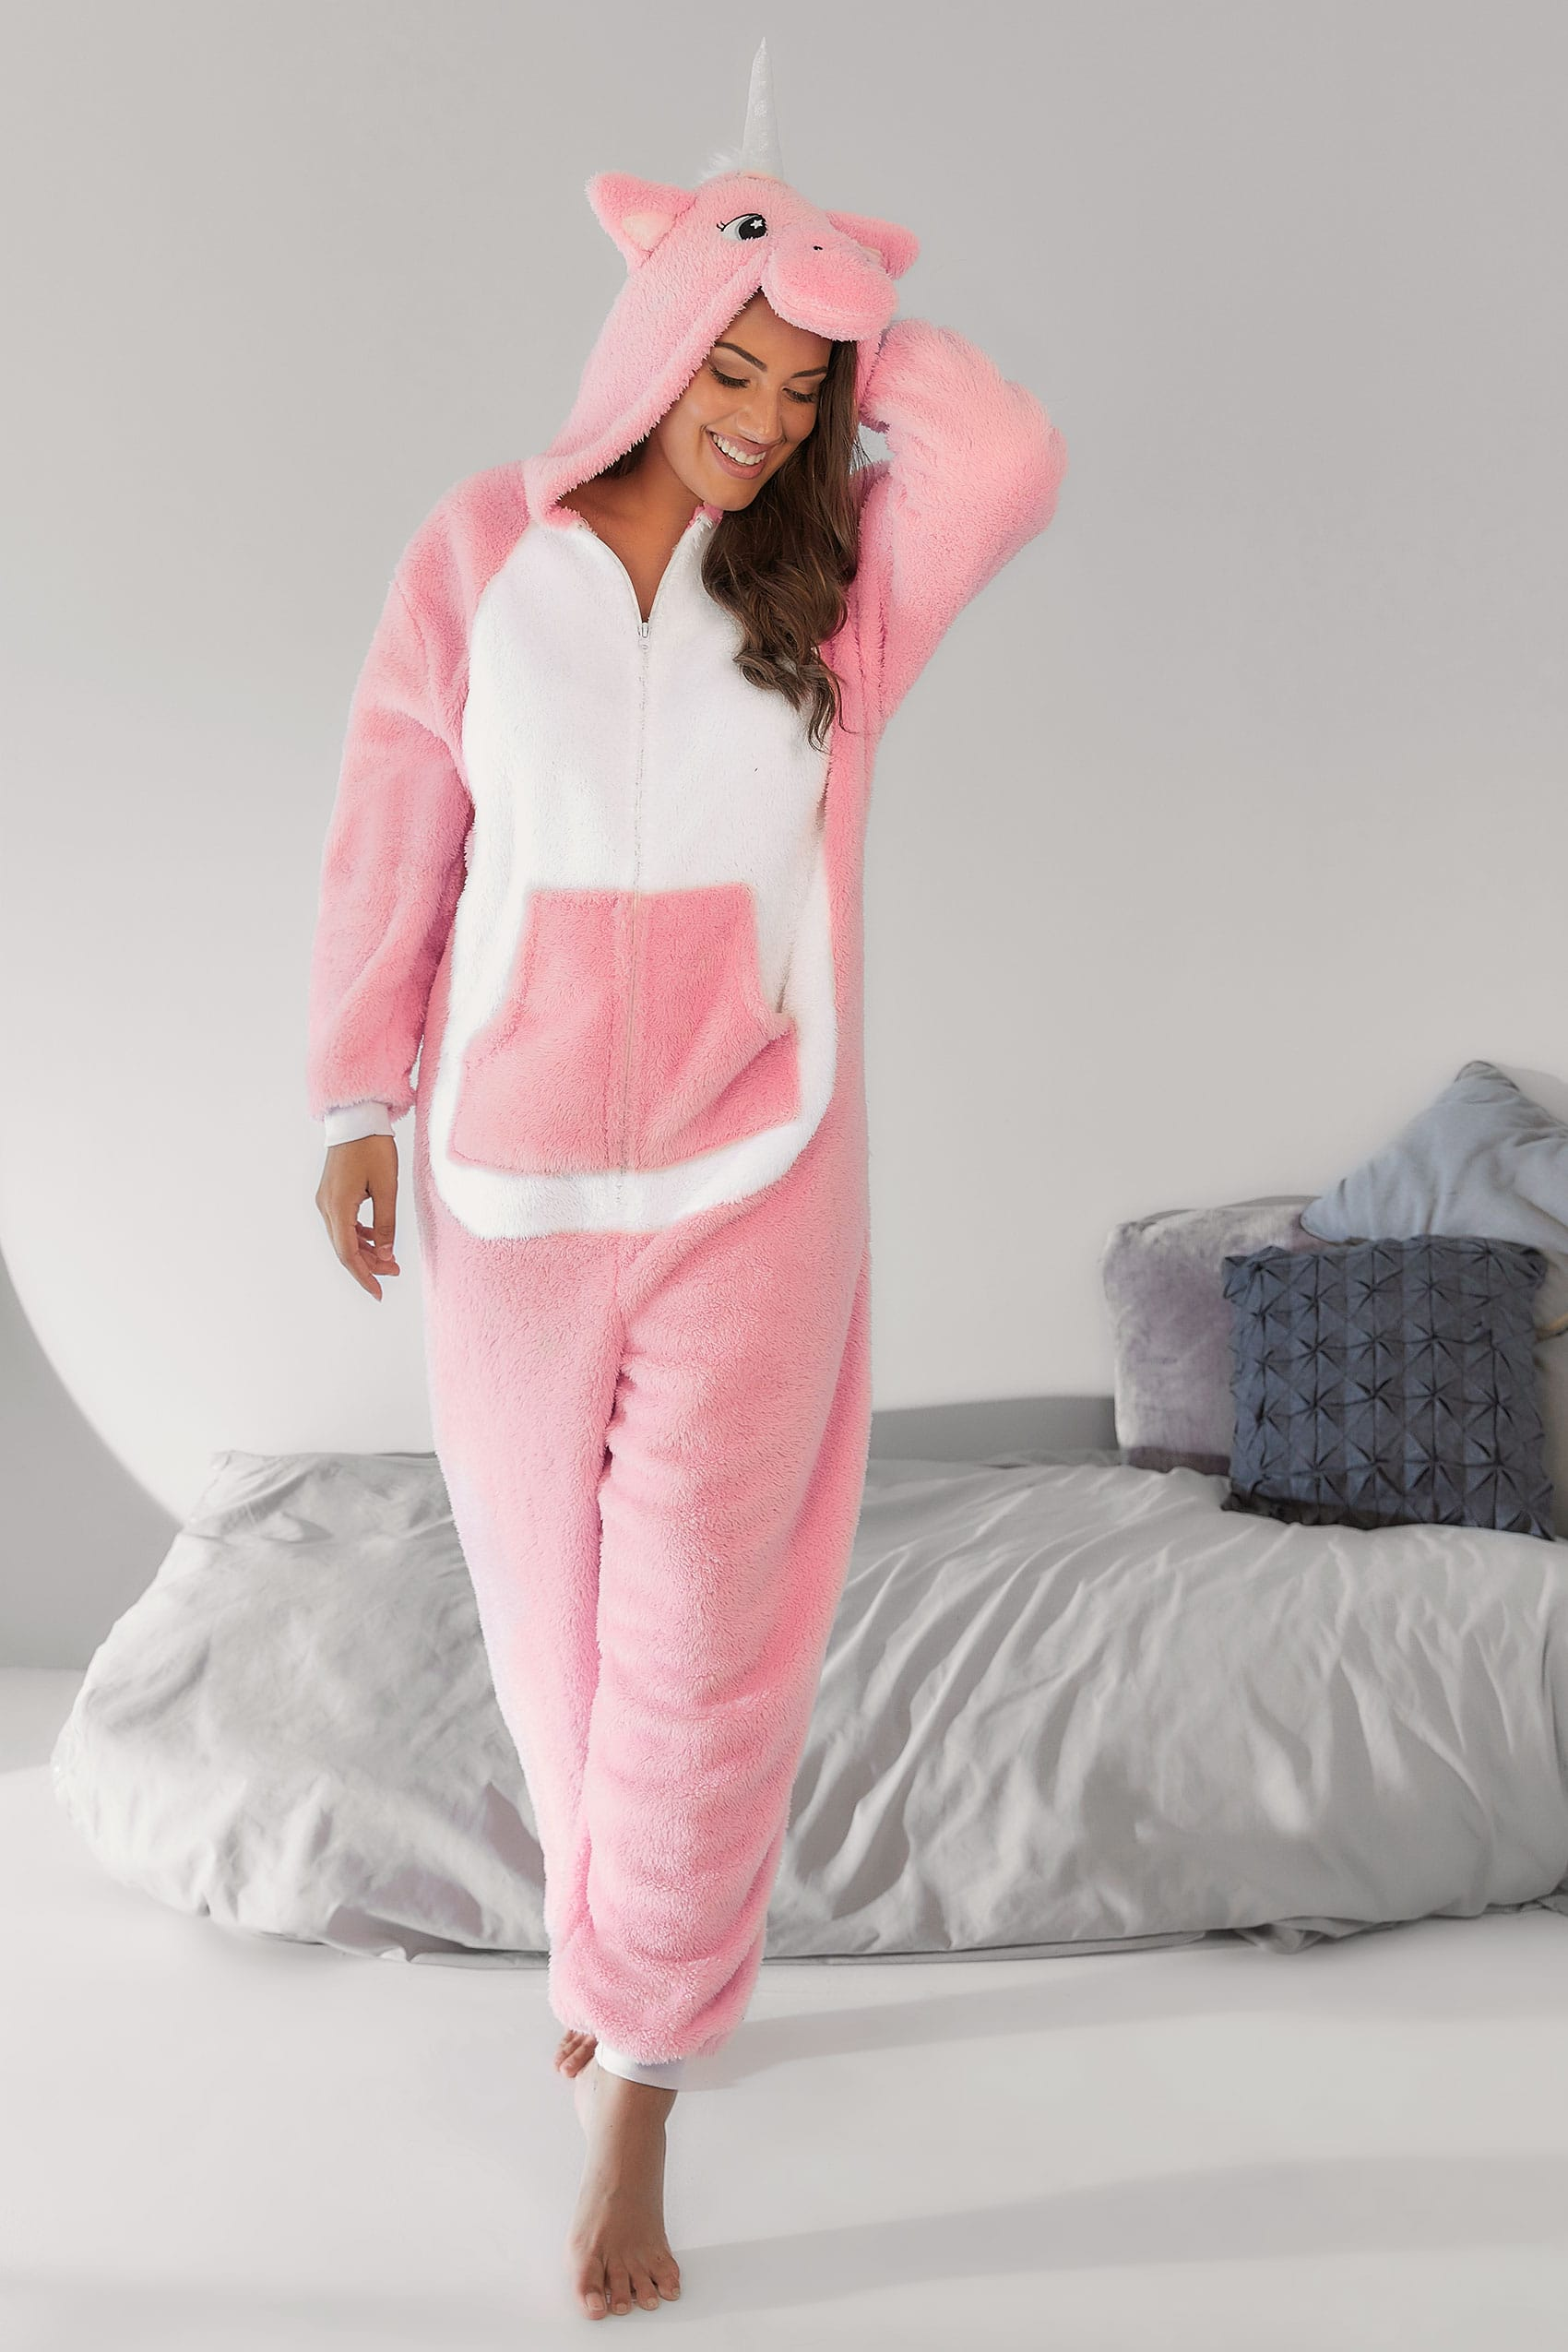 Image result for unicorn onesie ladies